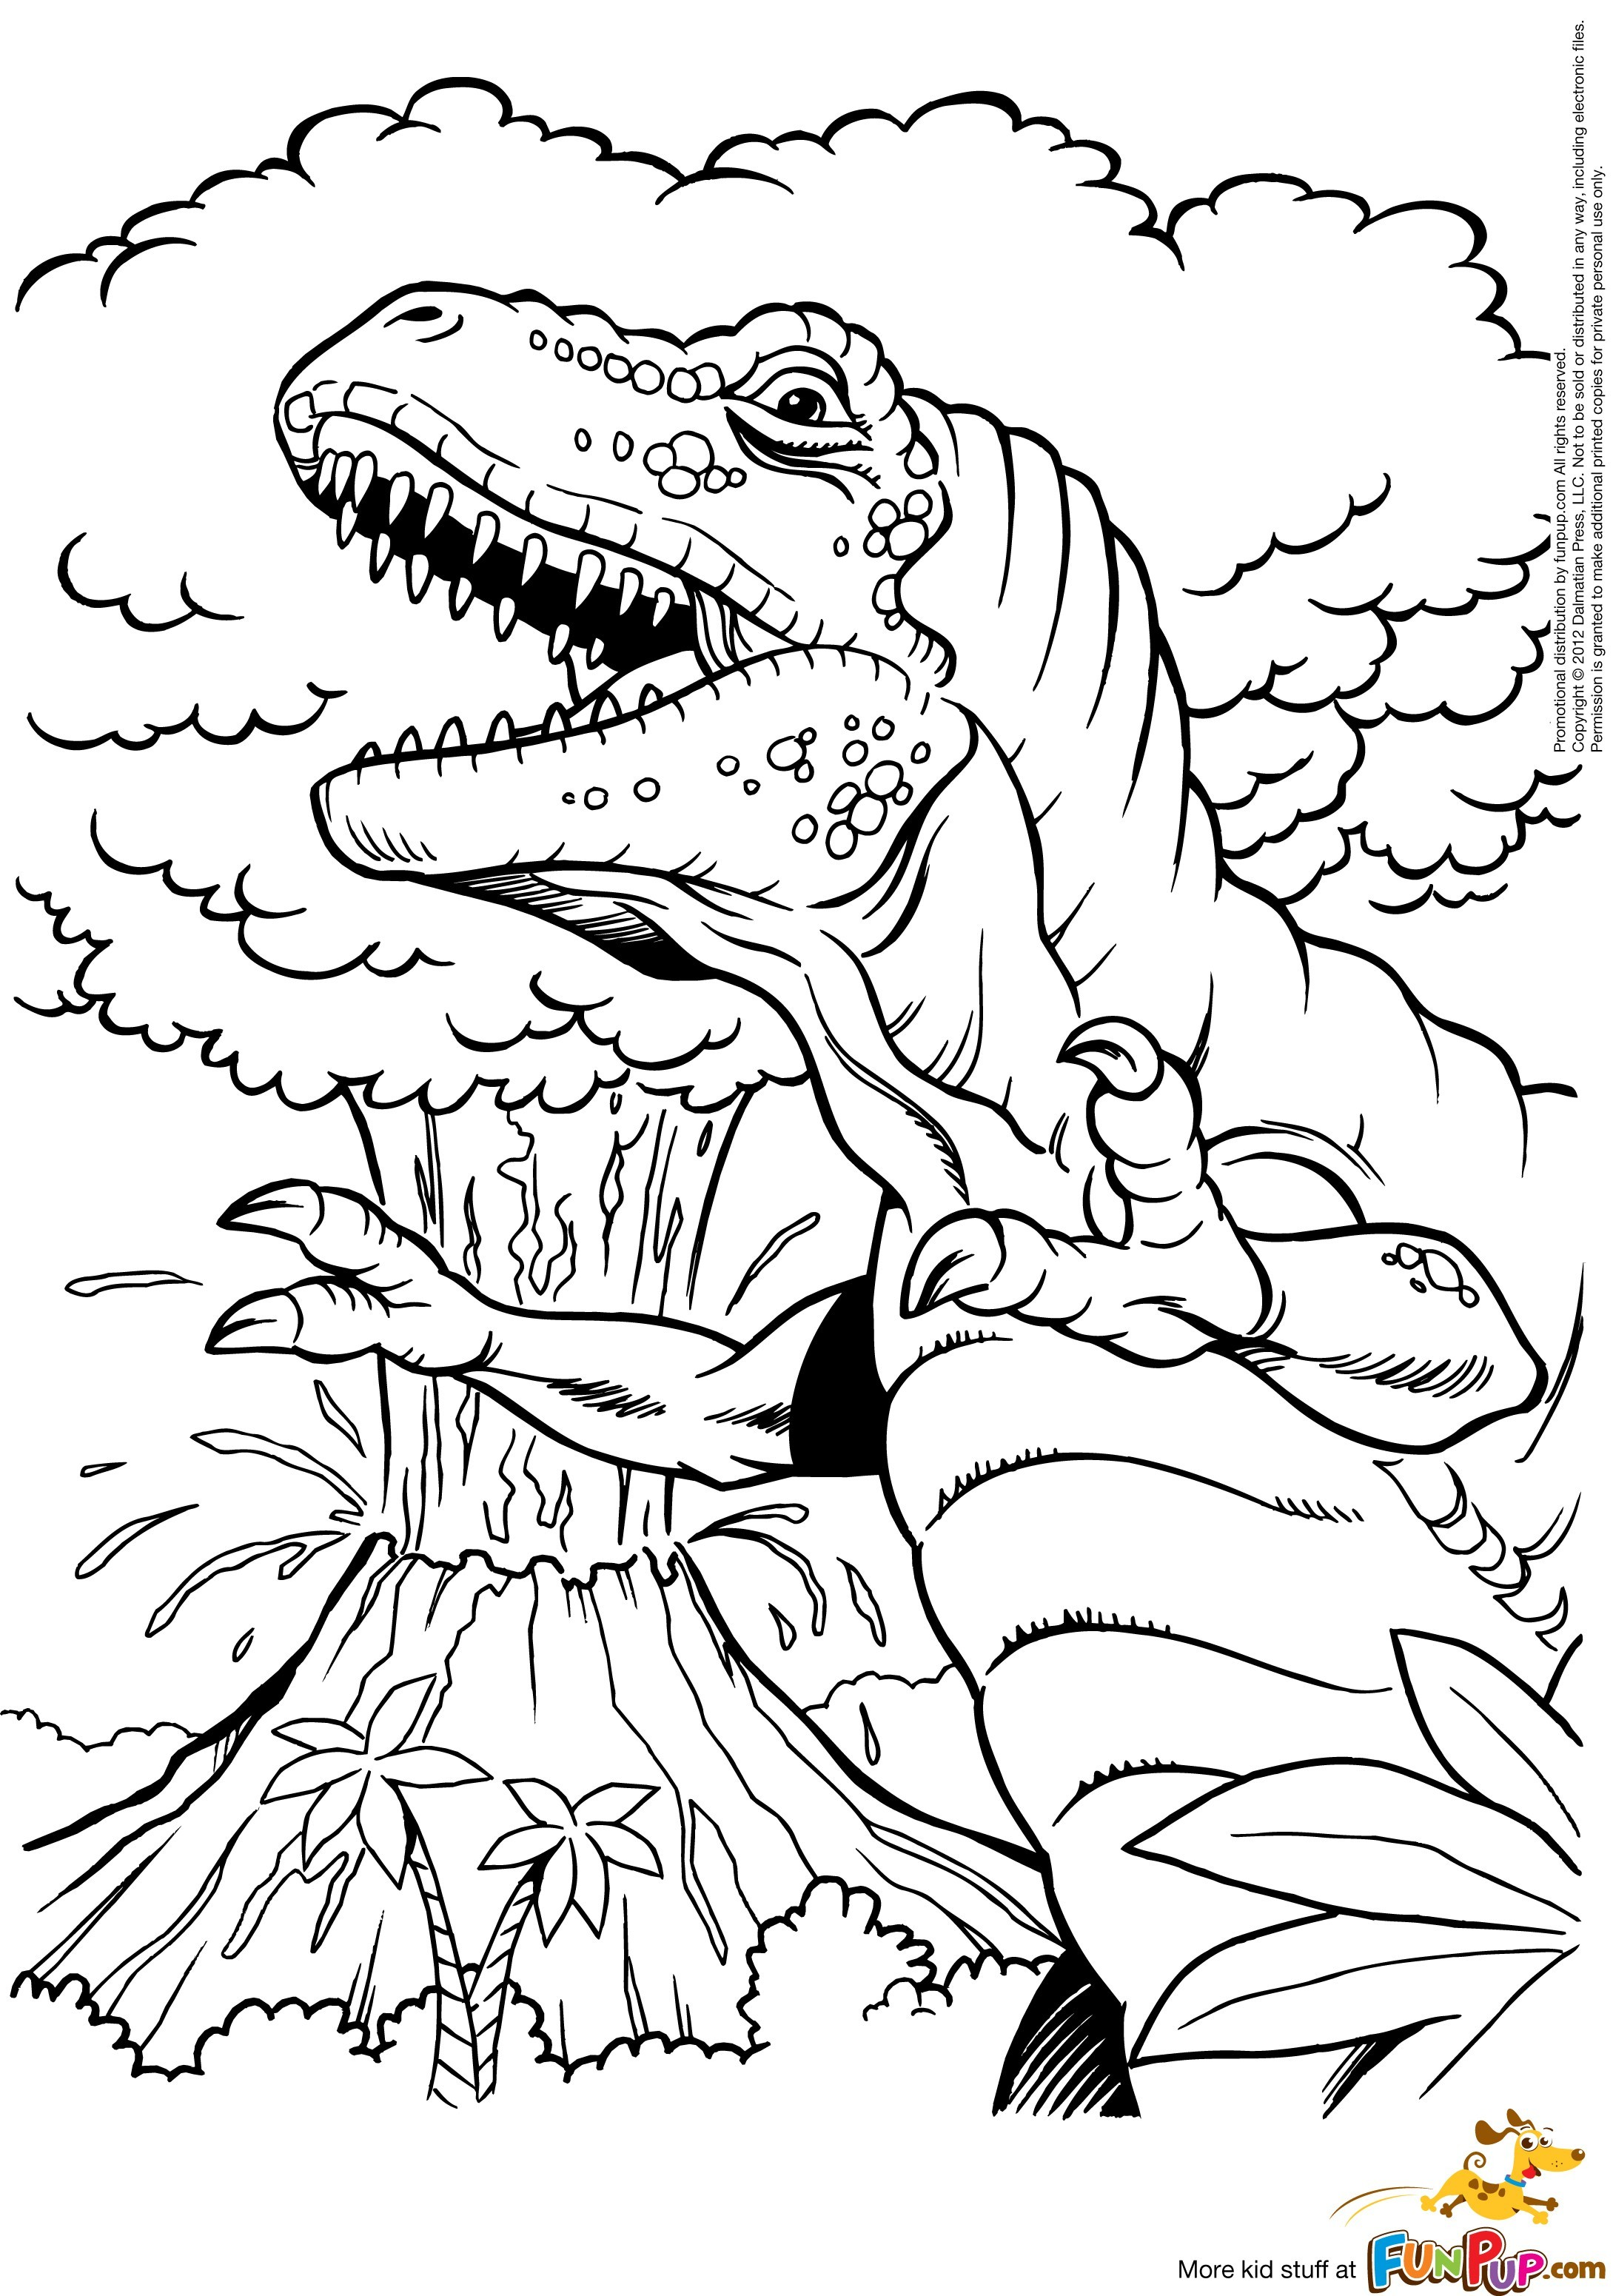 2179x3101 Tron Coloring Pages Luxury Volcano Coloring Pages Vitlt – Free